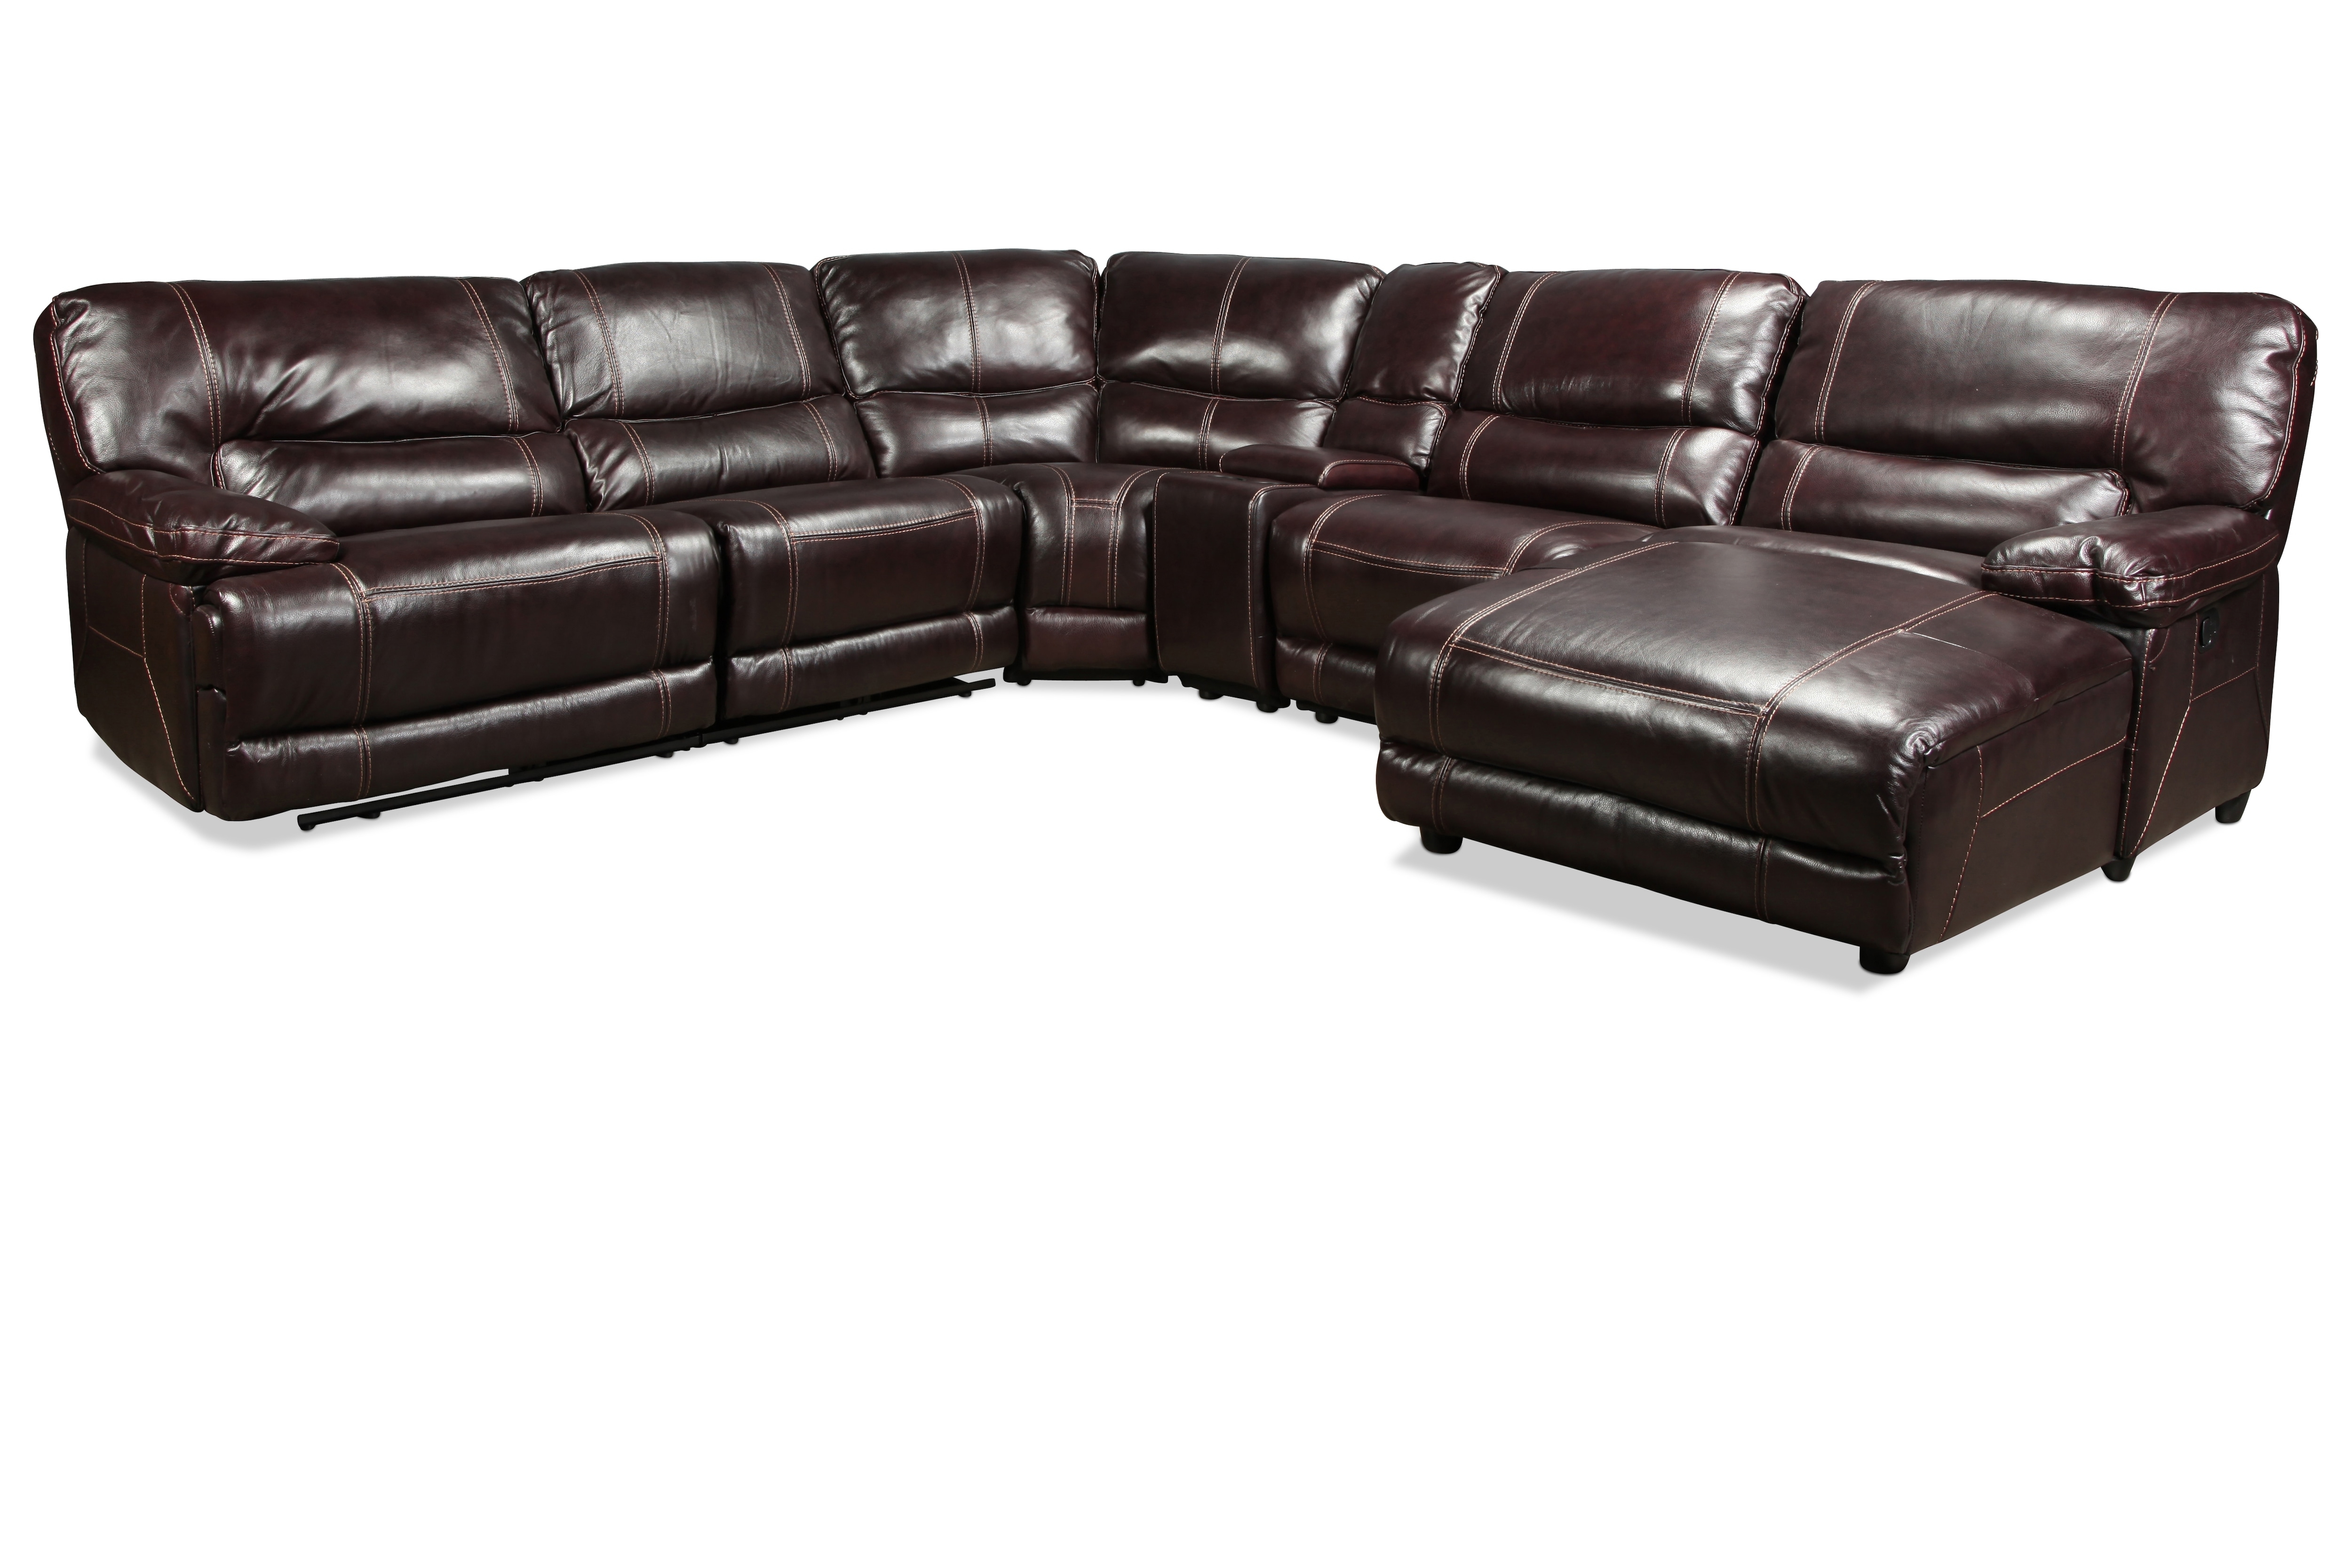 Sectionals | Levin Furniture with Josephine 2 Piece Sectionals With Laf Sofa (Image 25 of 30)